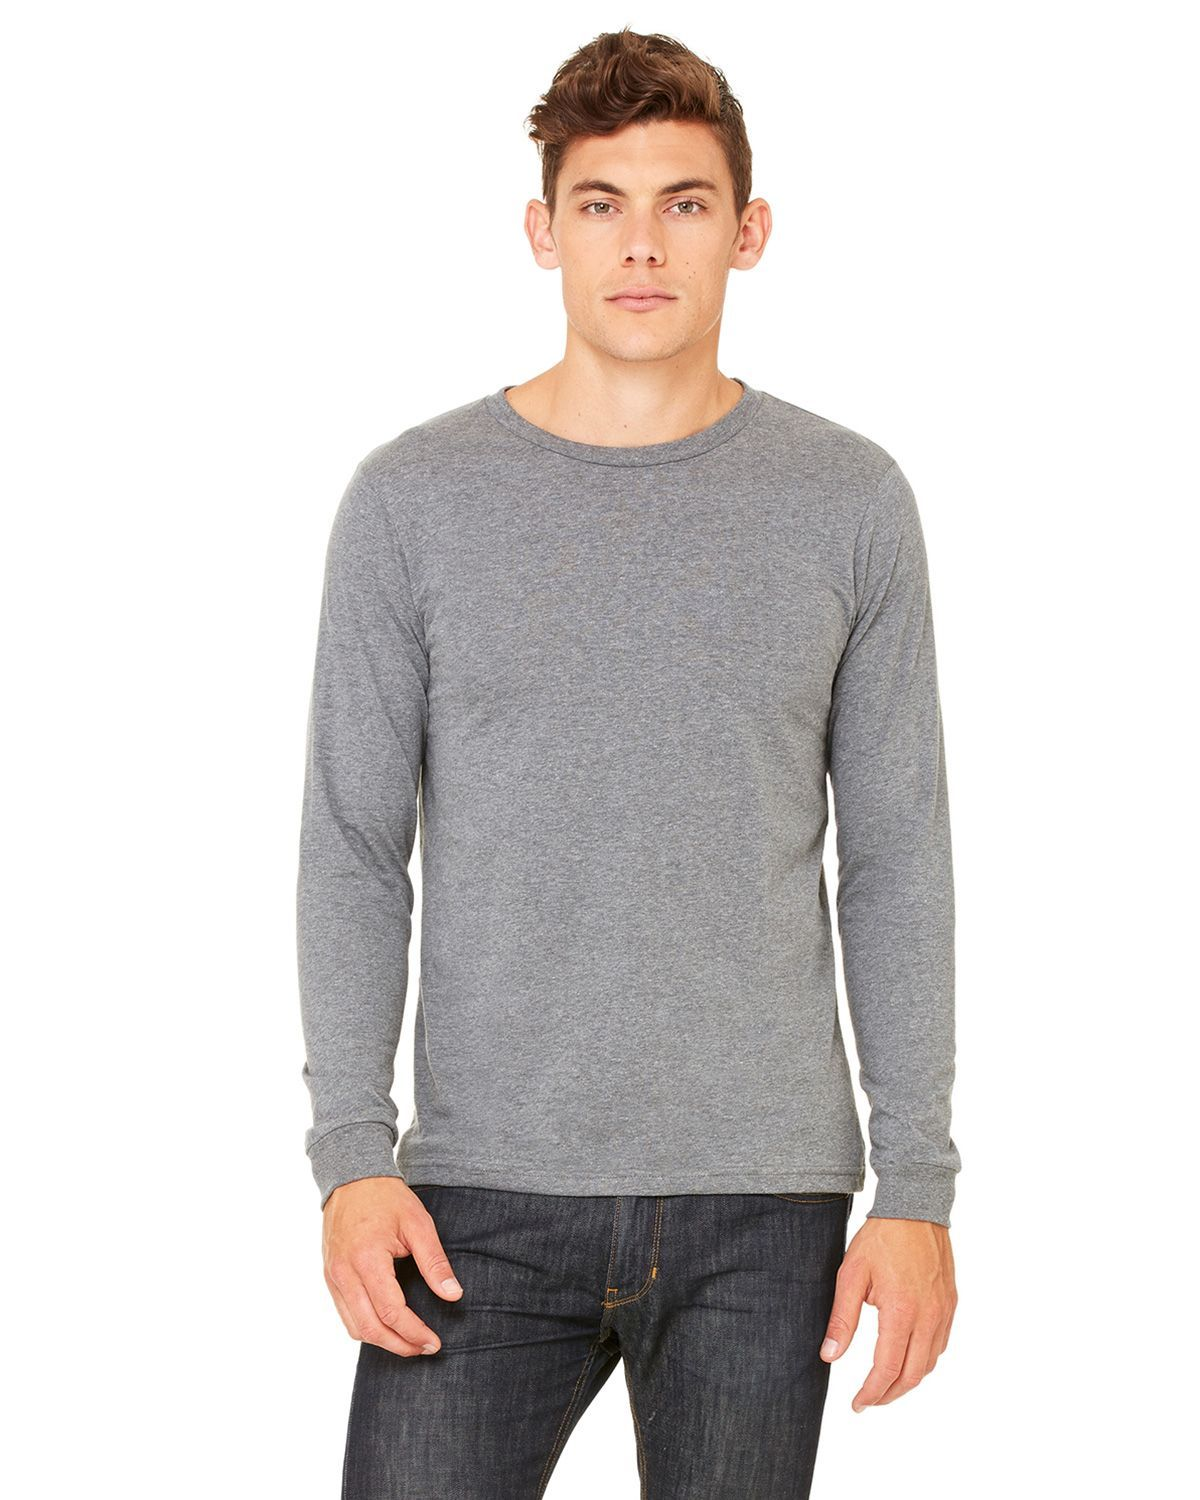 Bella + Canvas 3501 Men's Jersey Long-Sleeve T-Shirt - Deep Heather - XS from Bella + Canvas